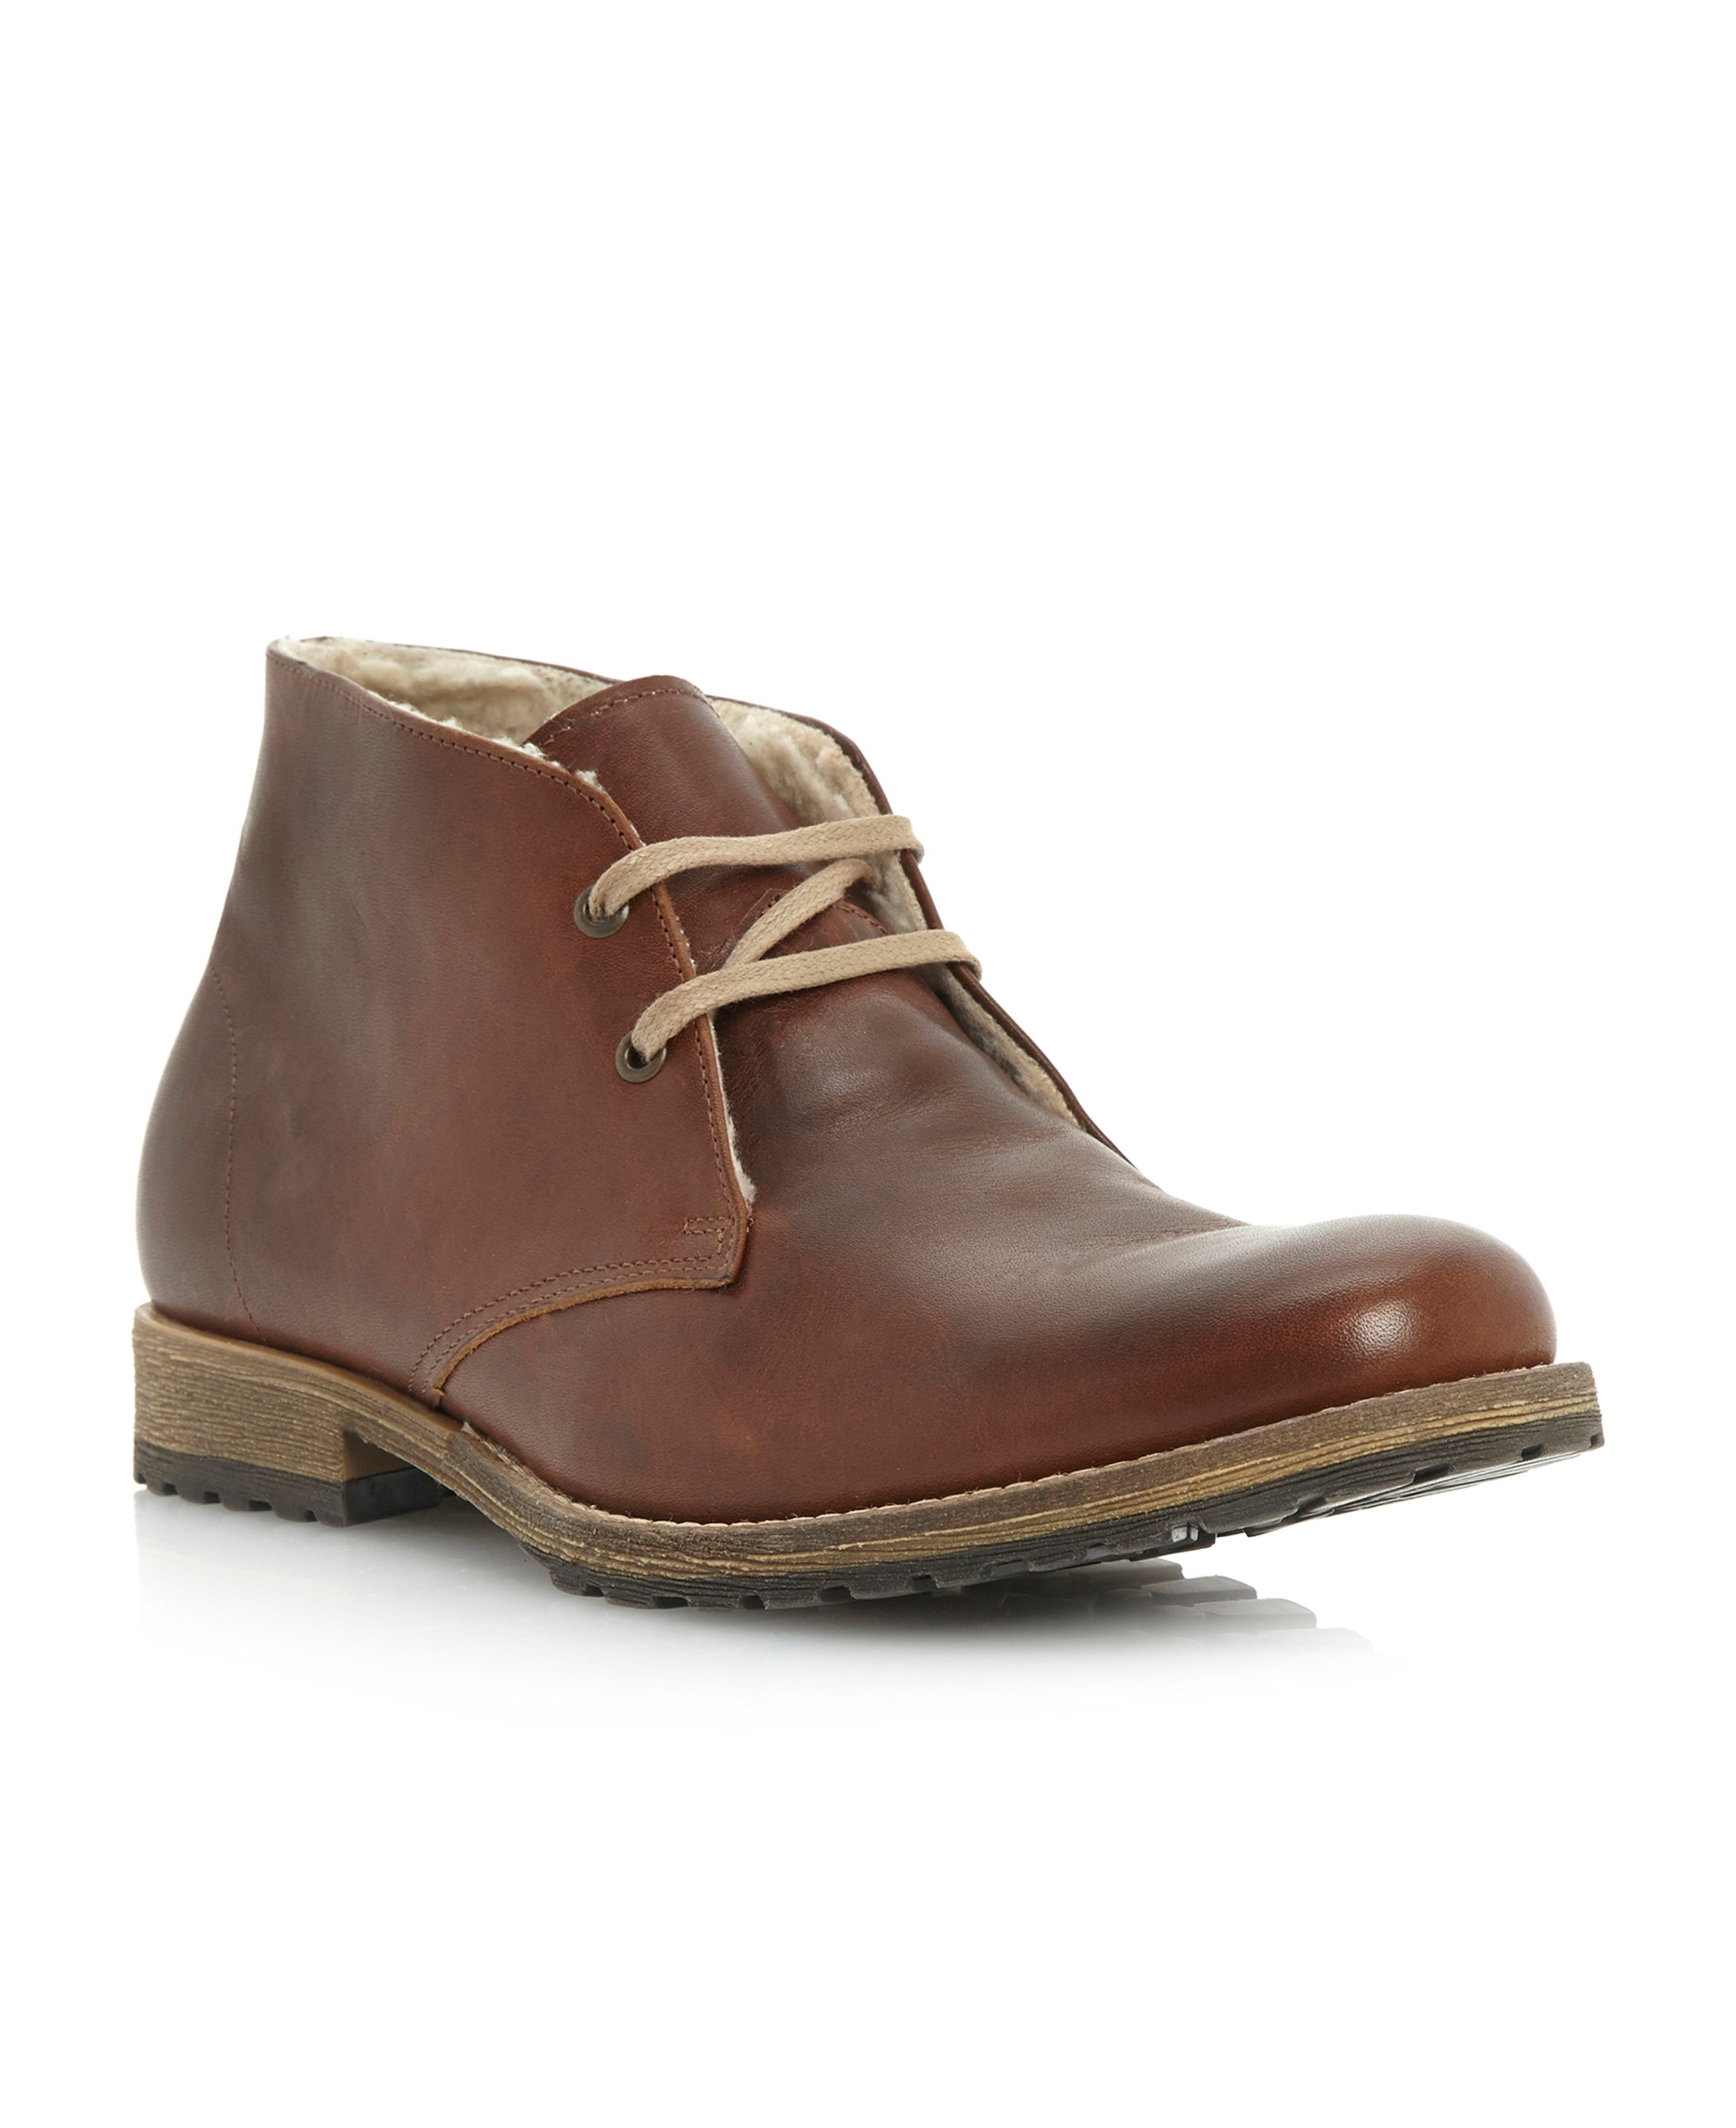 Columbo warm lined 2 eye chukka